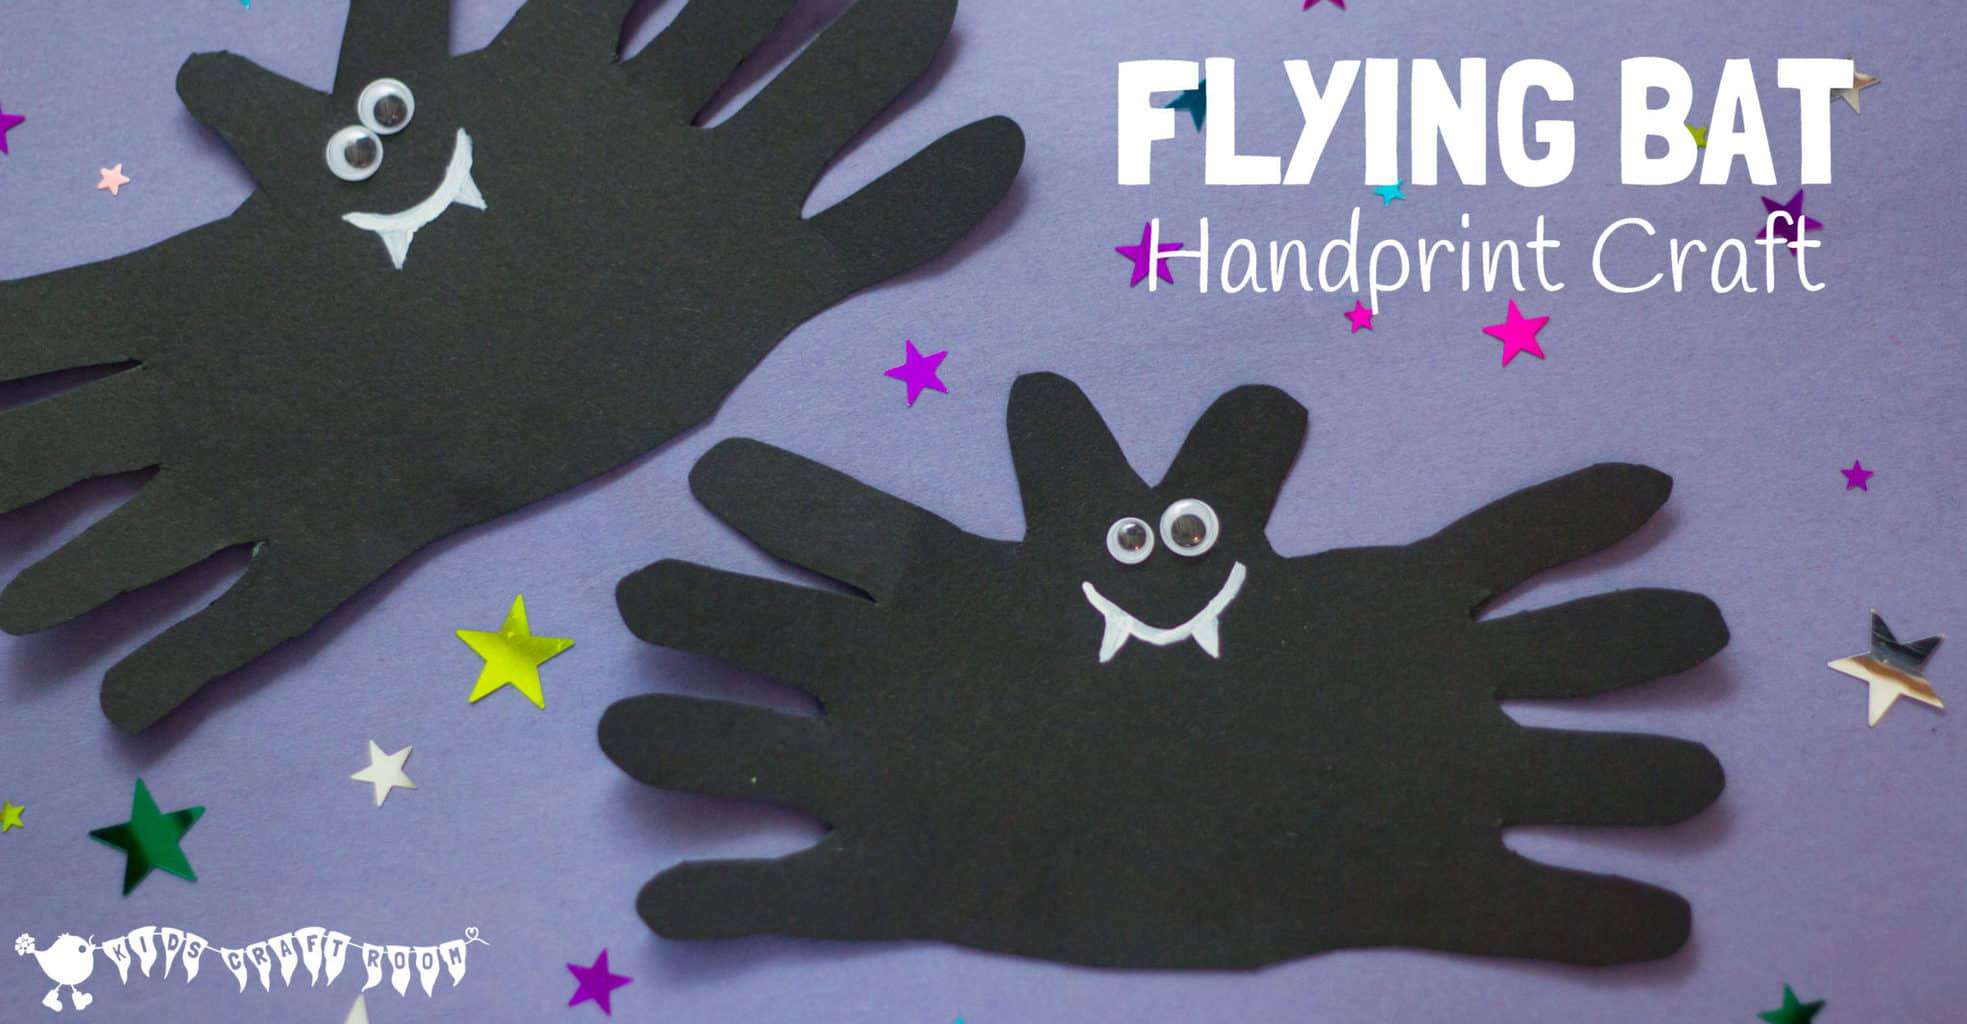 A cute and cheeky Halloween Bat handprint craft for kids. Great for Halloween party decorations, greeting cards or even as a bat toy for kids to play with.